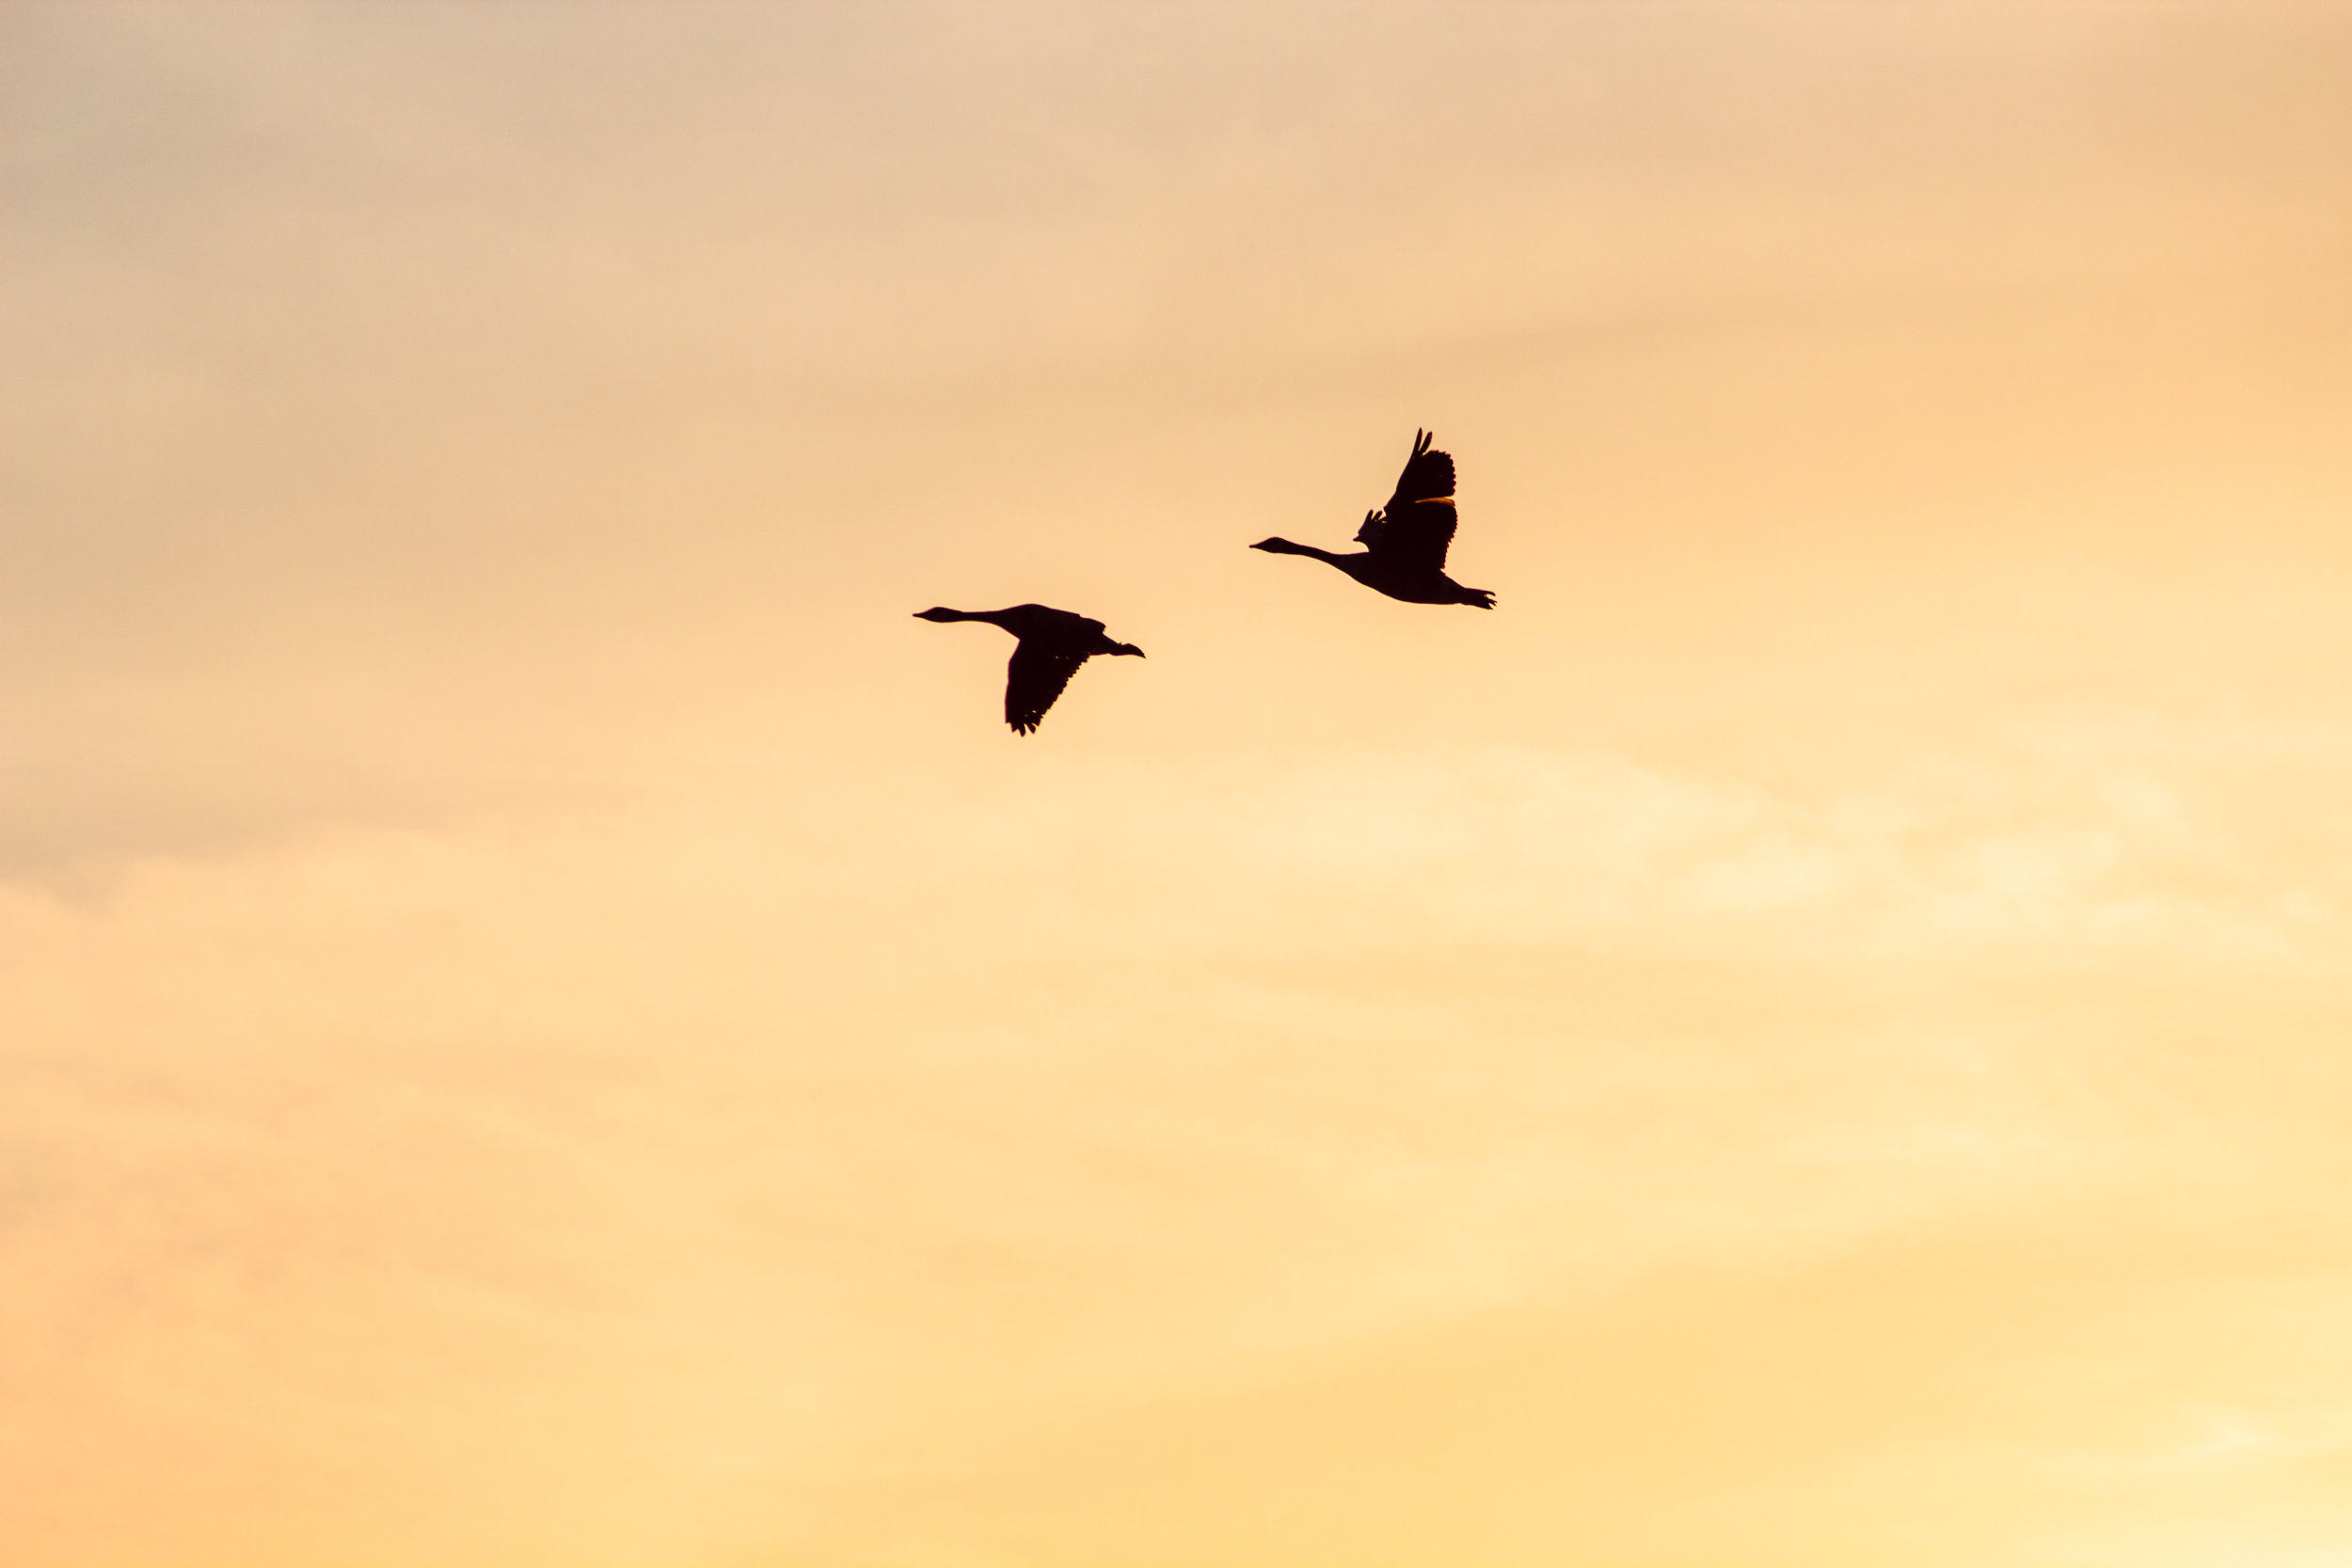 geese_in_dc_large-300x200.jpg